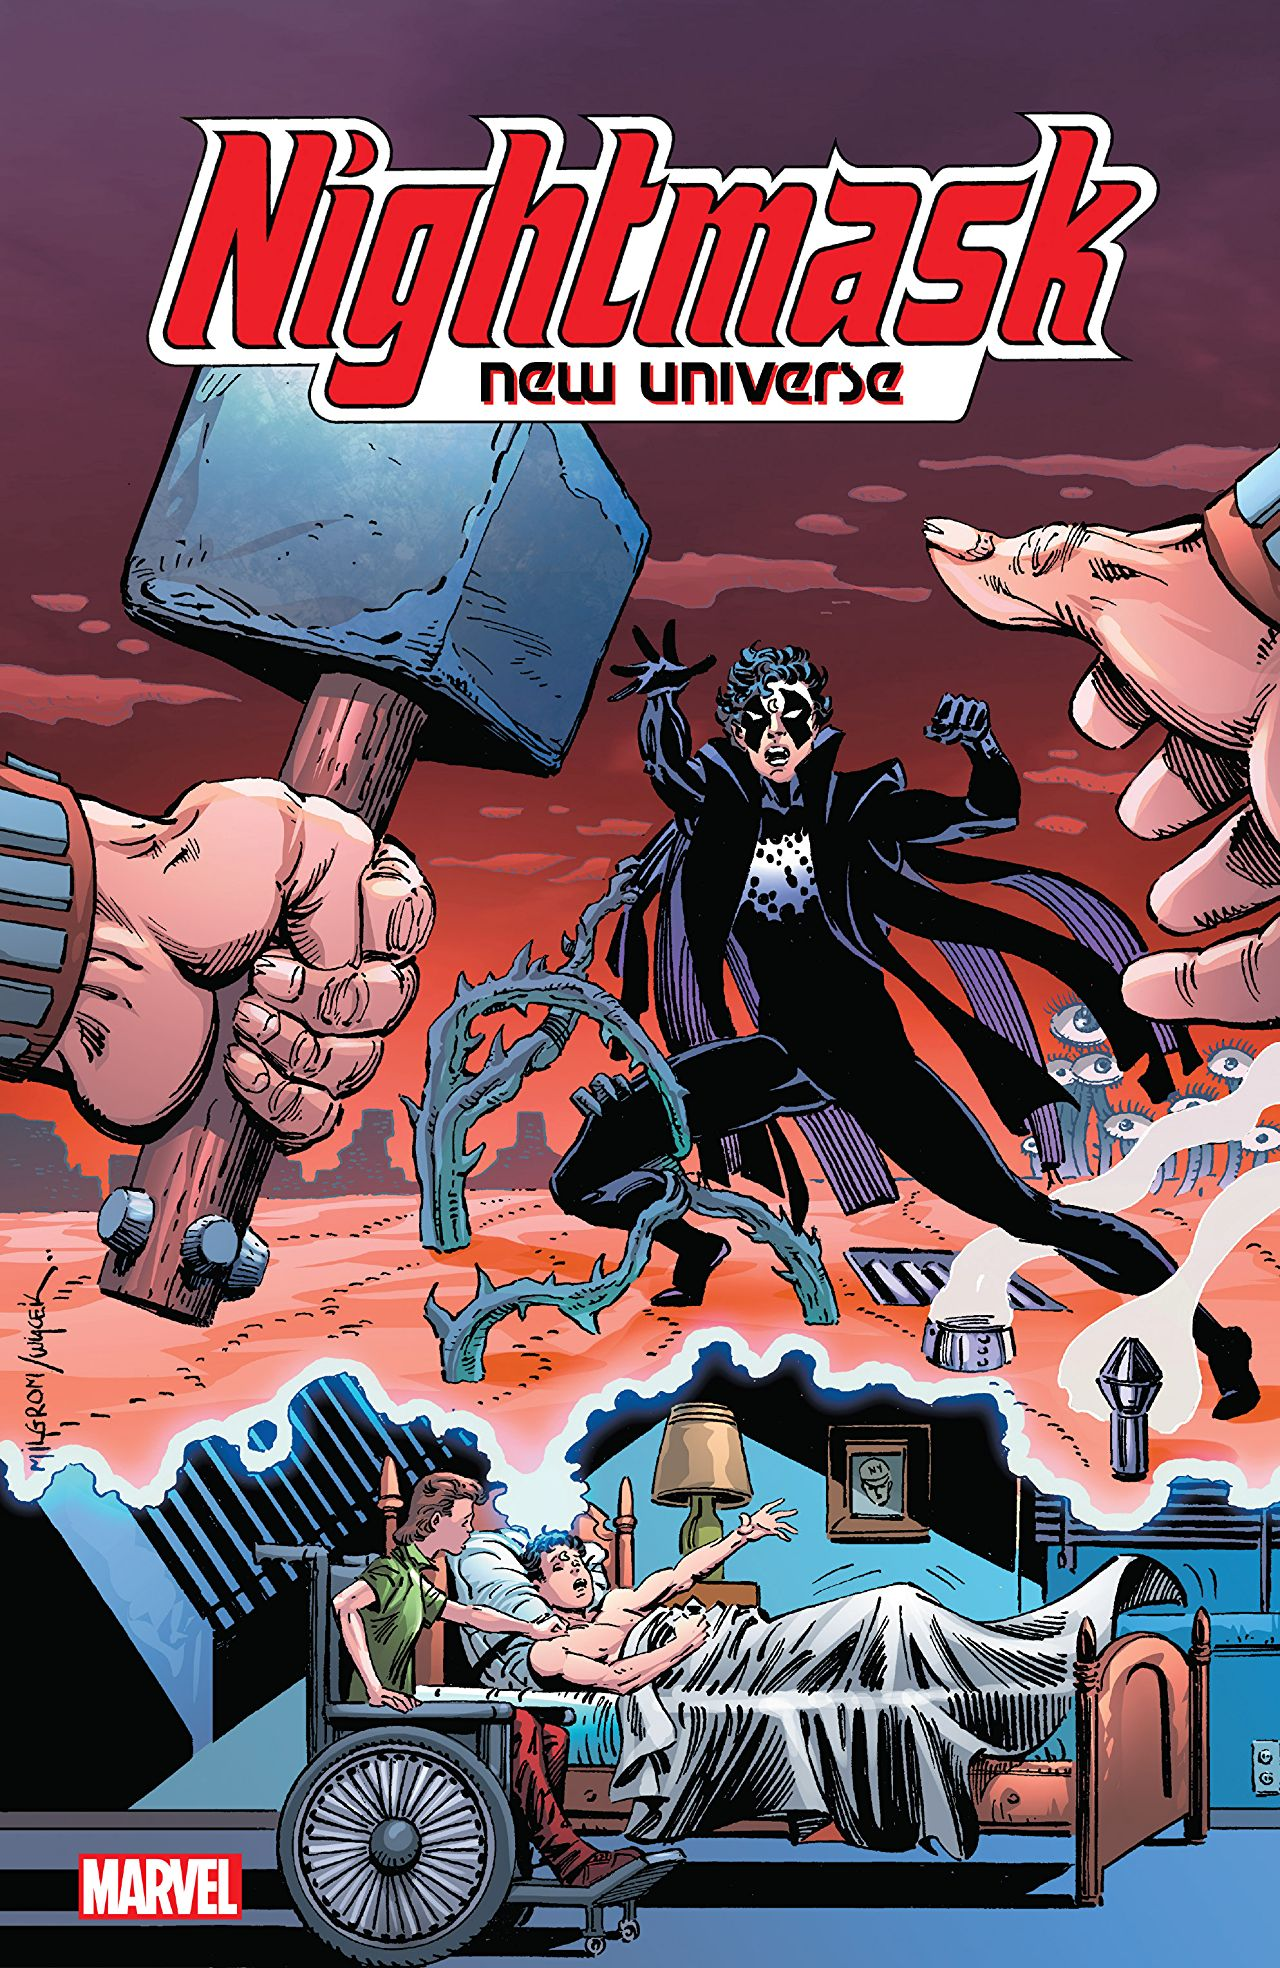 Nightmask: New Universe Vol. 1 Review